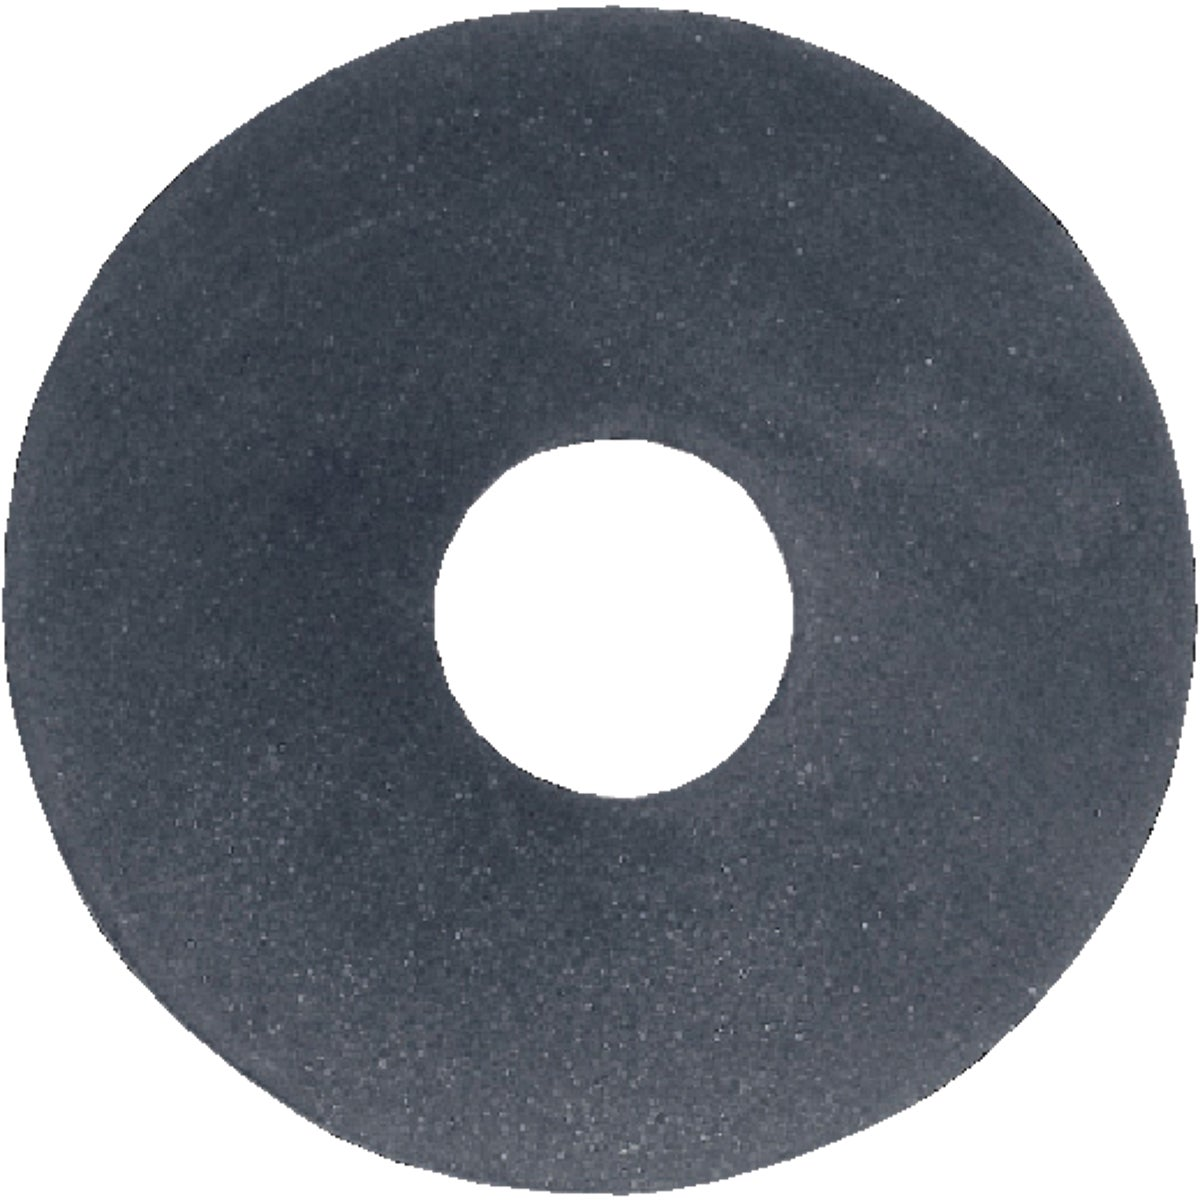 "1-1/4""OD WASHER - 61807B by Danco Perfect Match"